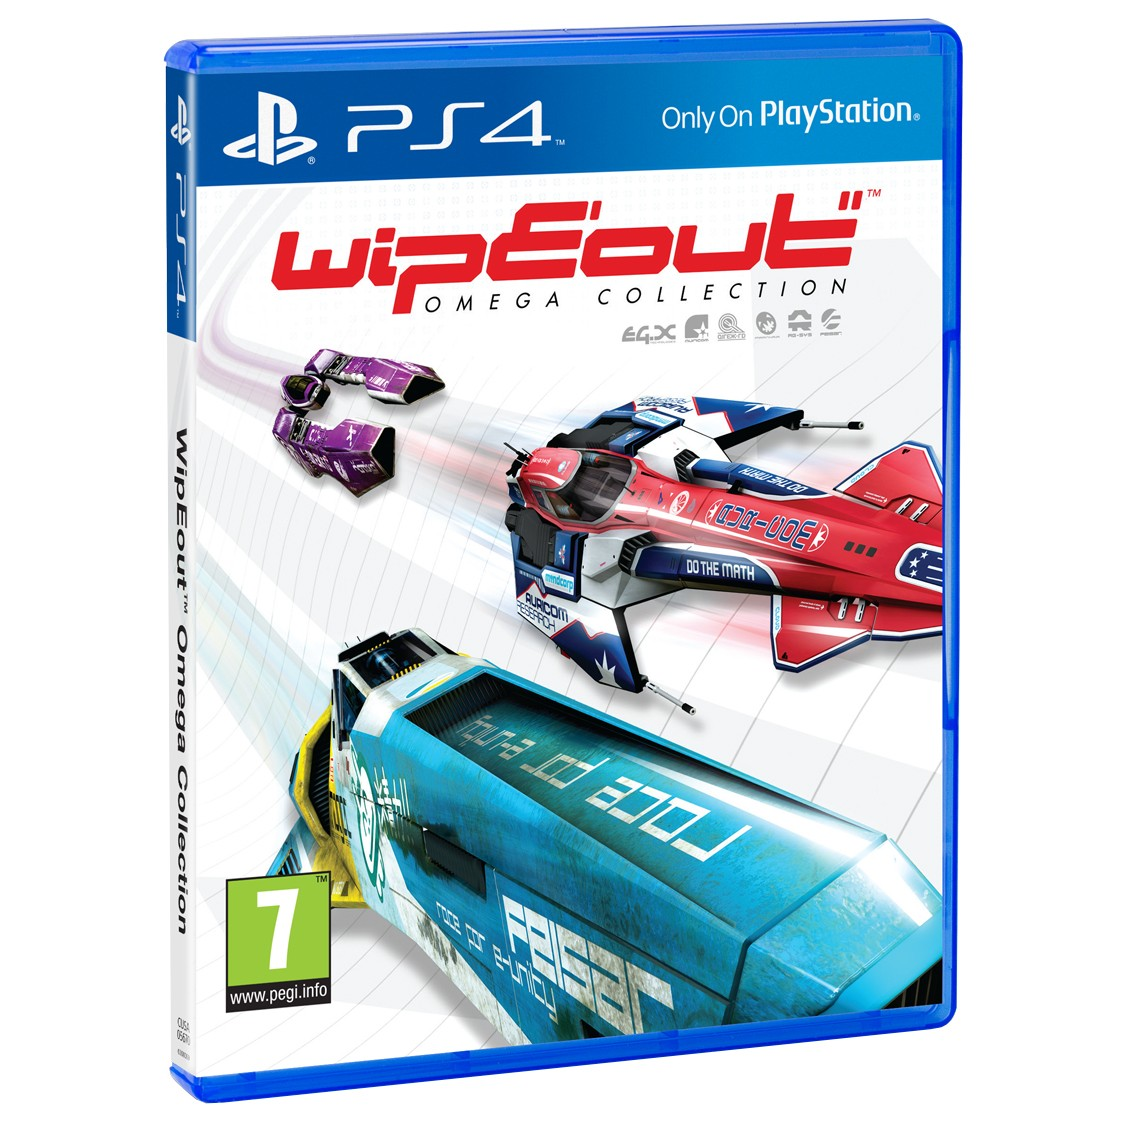 1043055 : WipEout Omega Collection (PS4)